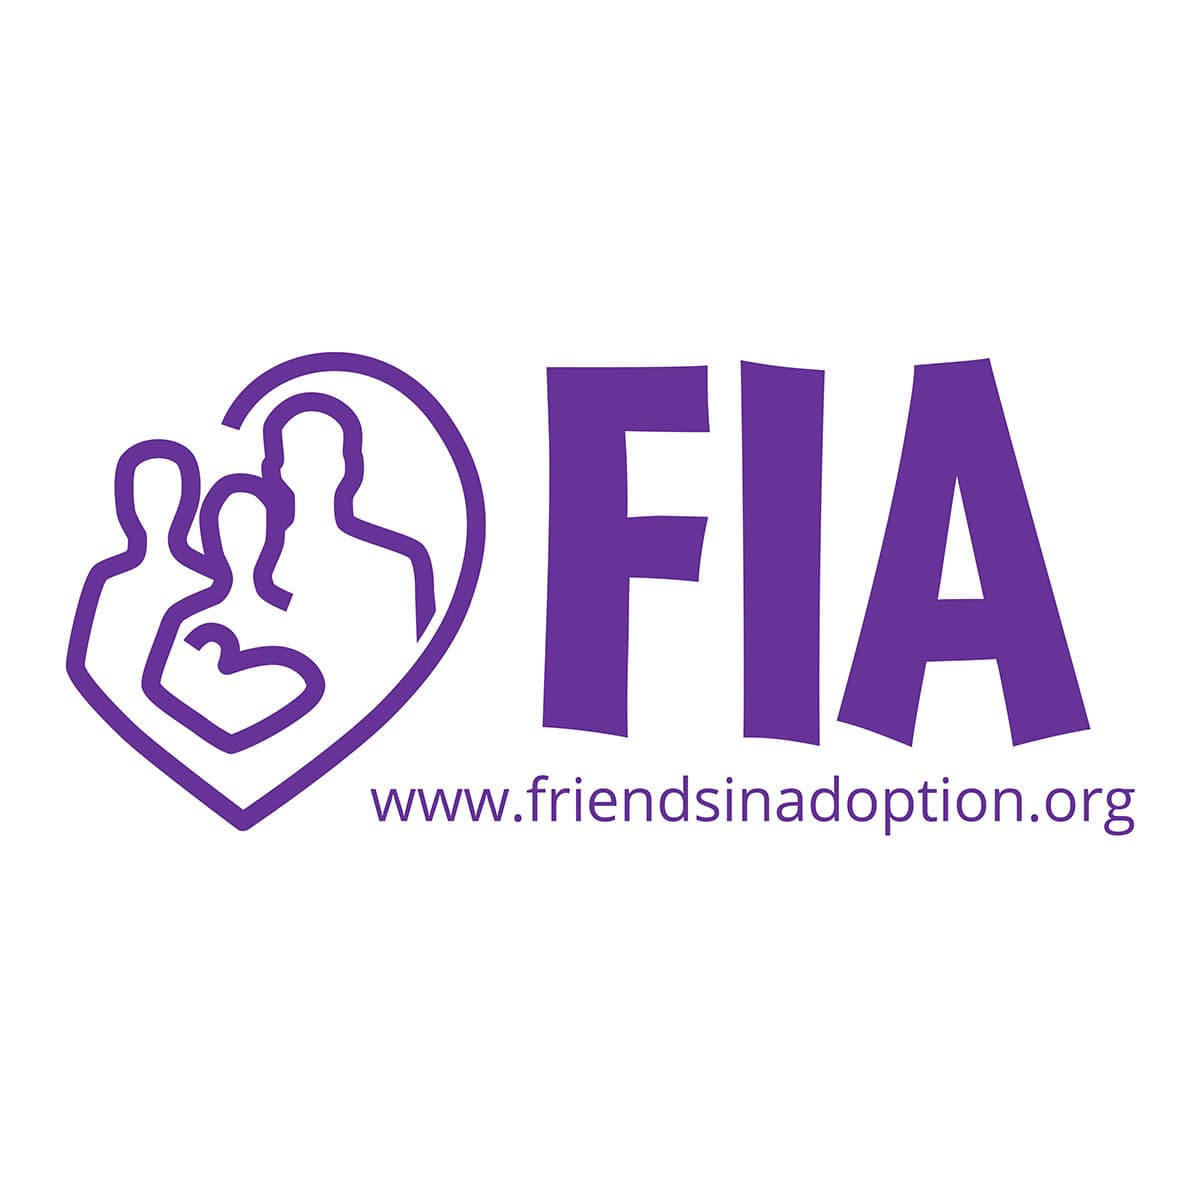 Friends in Adoption (FIA), a compassionate Adoption Agency